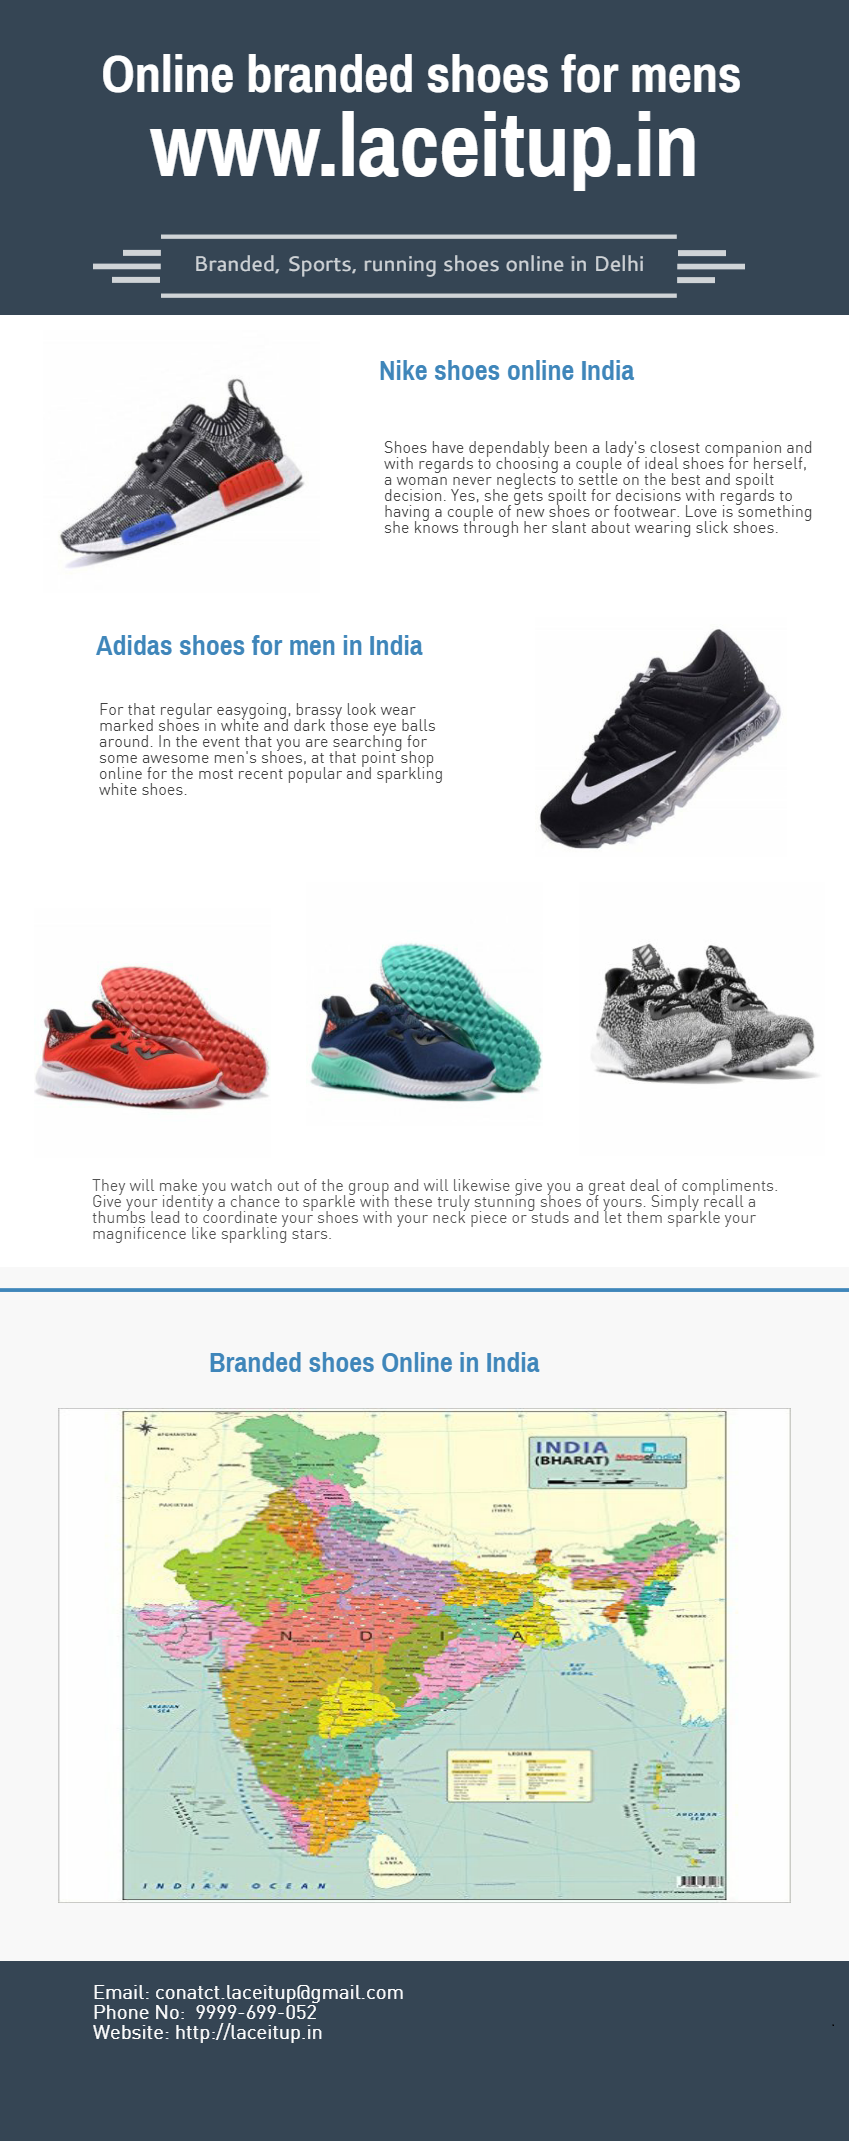 Buy Nike And Adidas Branded Sports Shoes Online In India We Provide Best Quality Shoes At Best Price Lacei Adidas Shoes Online Nike Shoes Online Shoes Online